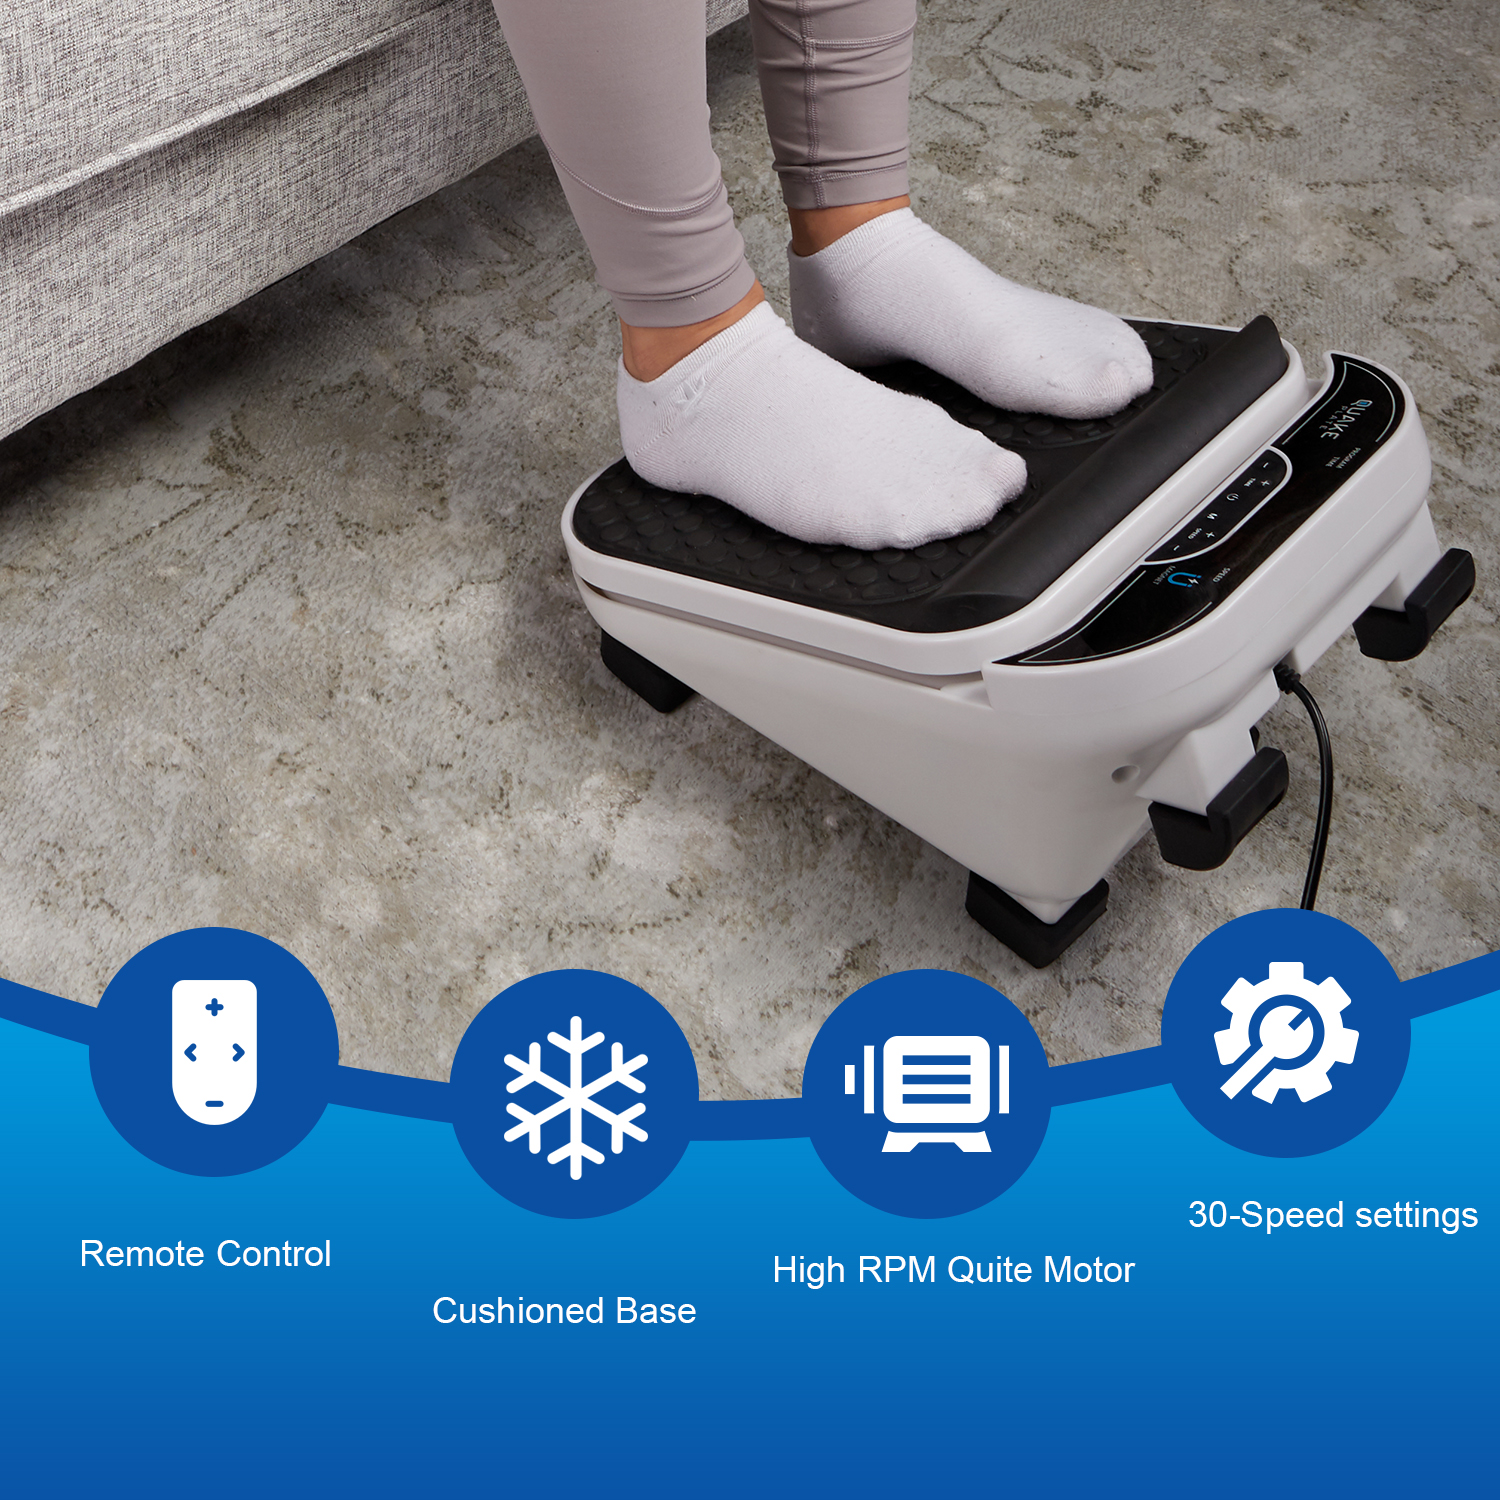 Foot Muscle Massager by Quake Plate High RPM Oscillating Deep Tissue Foot Massager Relaxing Muscle Massage for Foot Pain, Calf Relief, 30 Speed Vibrate with IR Remote